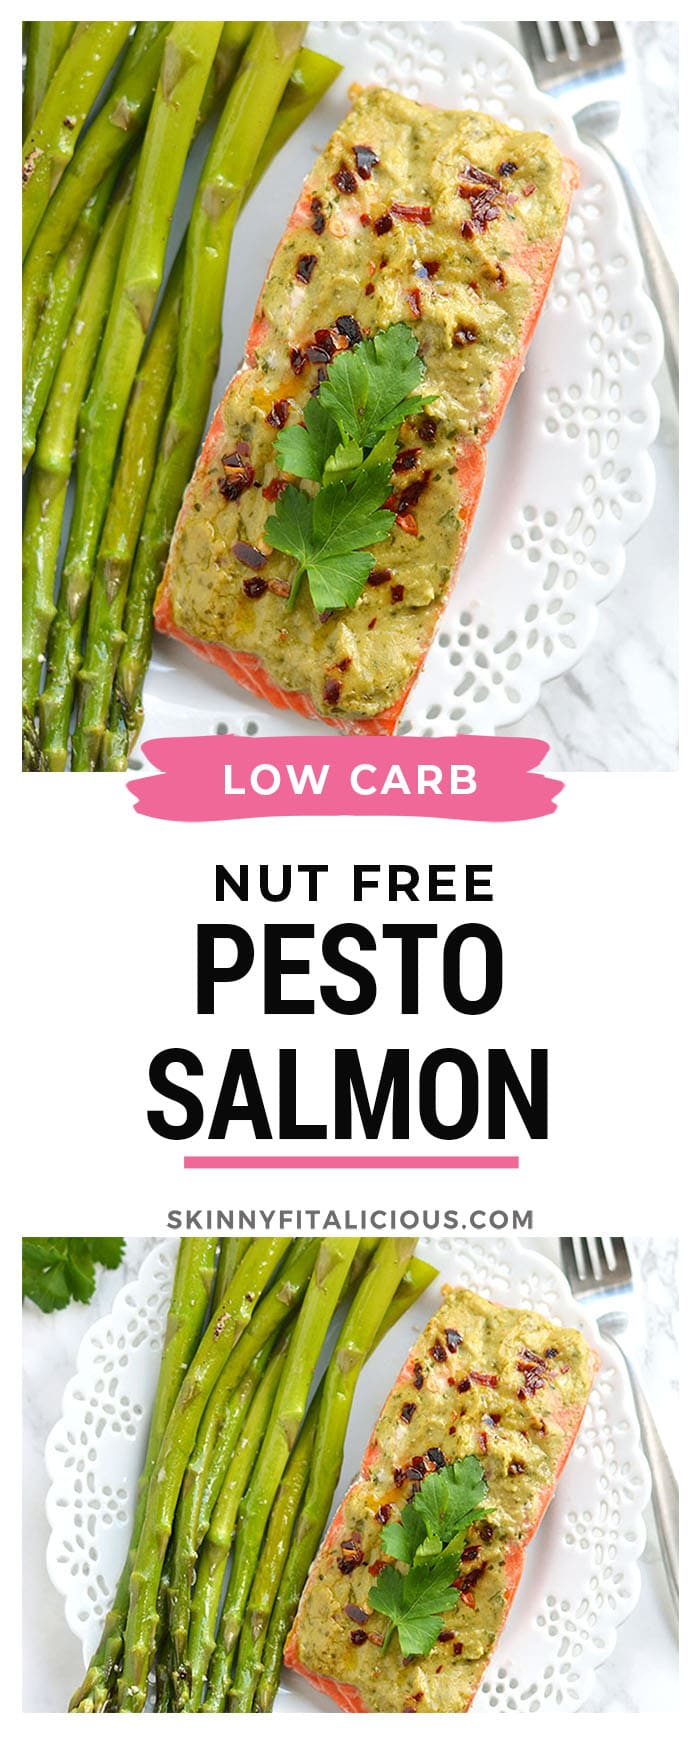 20 Minute Baked Pesto Salmon. Steamed in foil packs, this Paleo, low calorie, gluten free meal is a healthy twist on a dinner favorite served with nut free pesto! Whole30 + Gluten Free + Low Calorie + Paleo + Low Carb